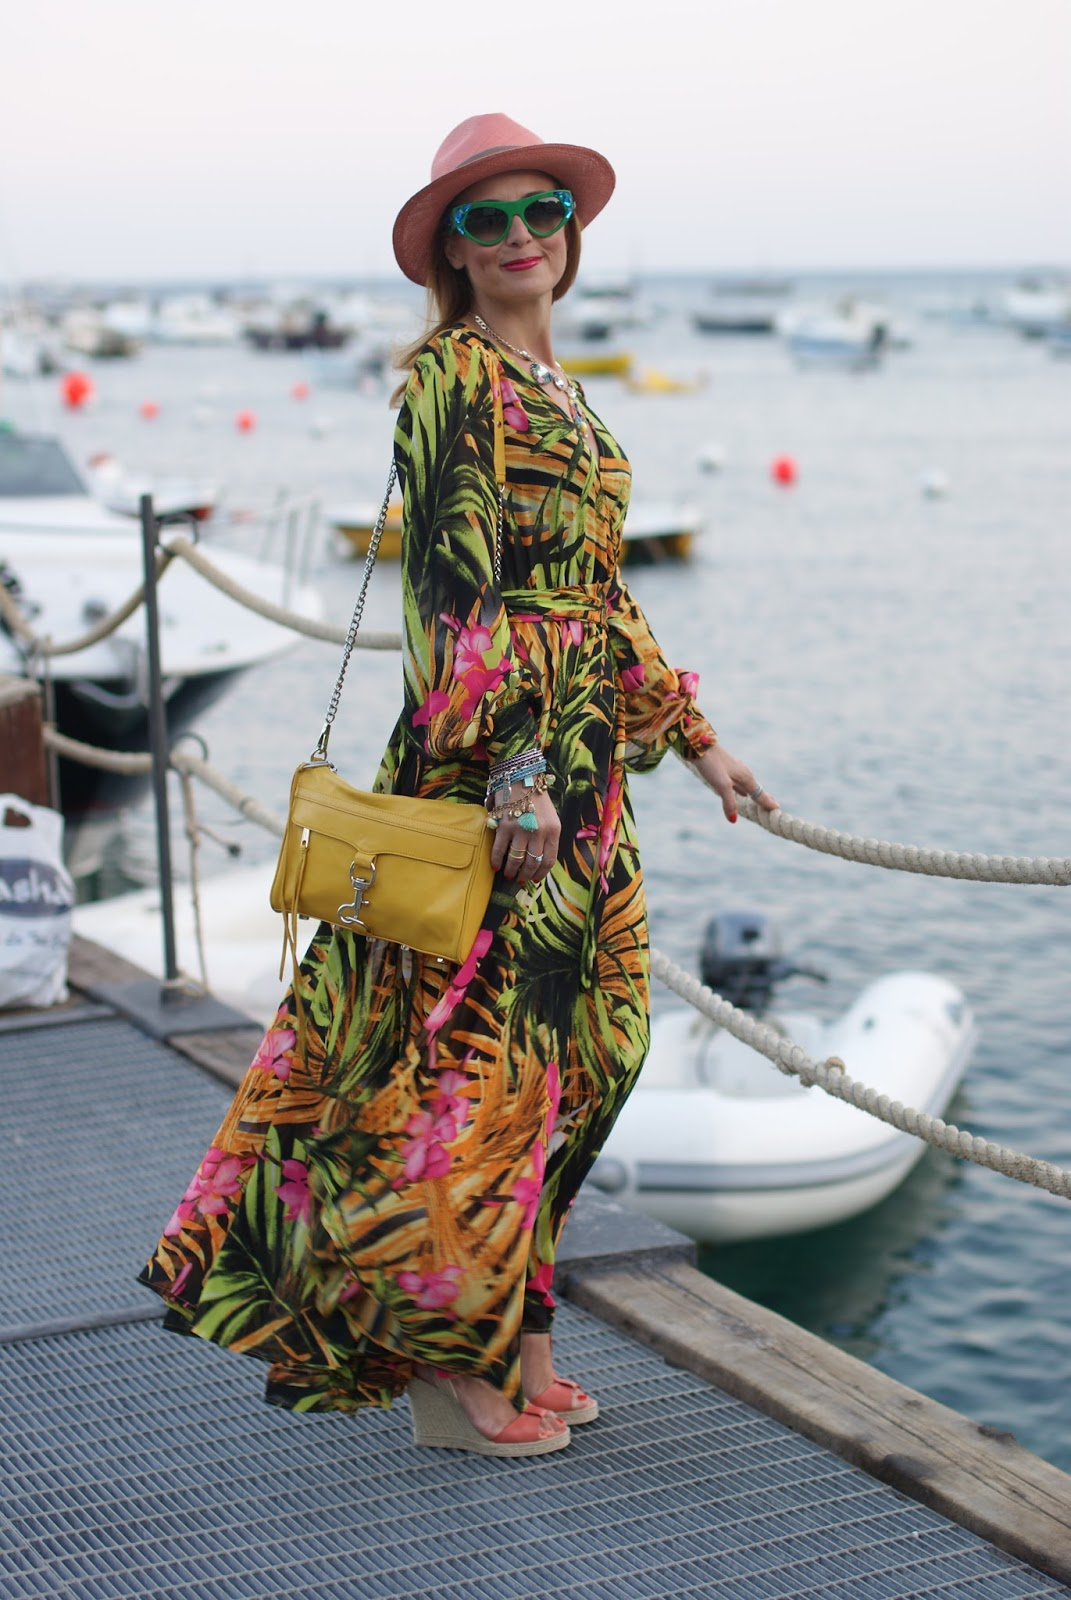 amalfi coast style with a tropical print chiffon maxi dress, ecua-andino hat for a summer boho style on Fashion and Cookies fashion blog, fashion blogger style